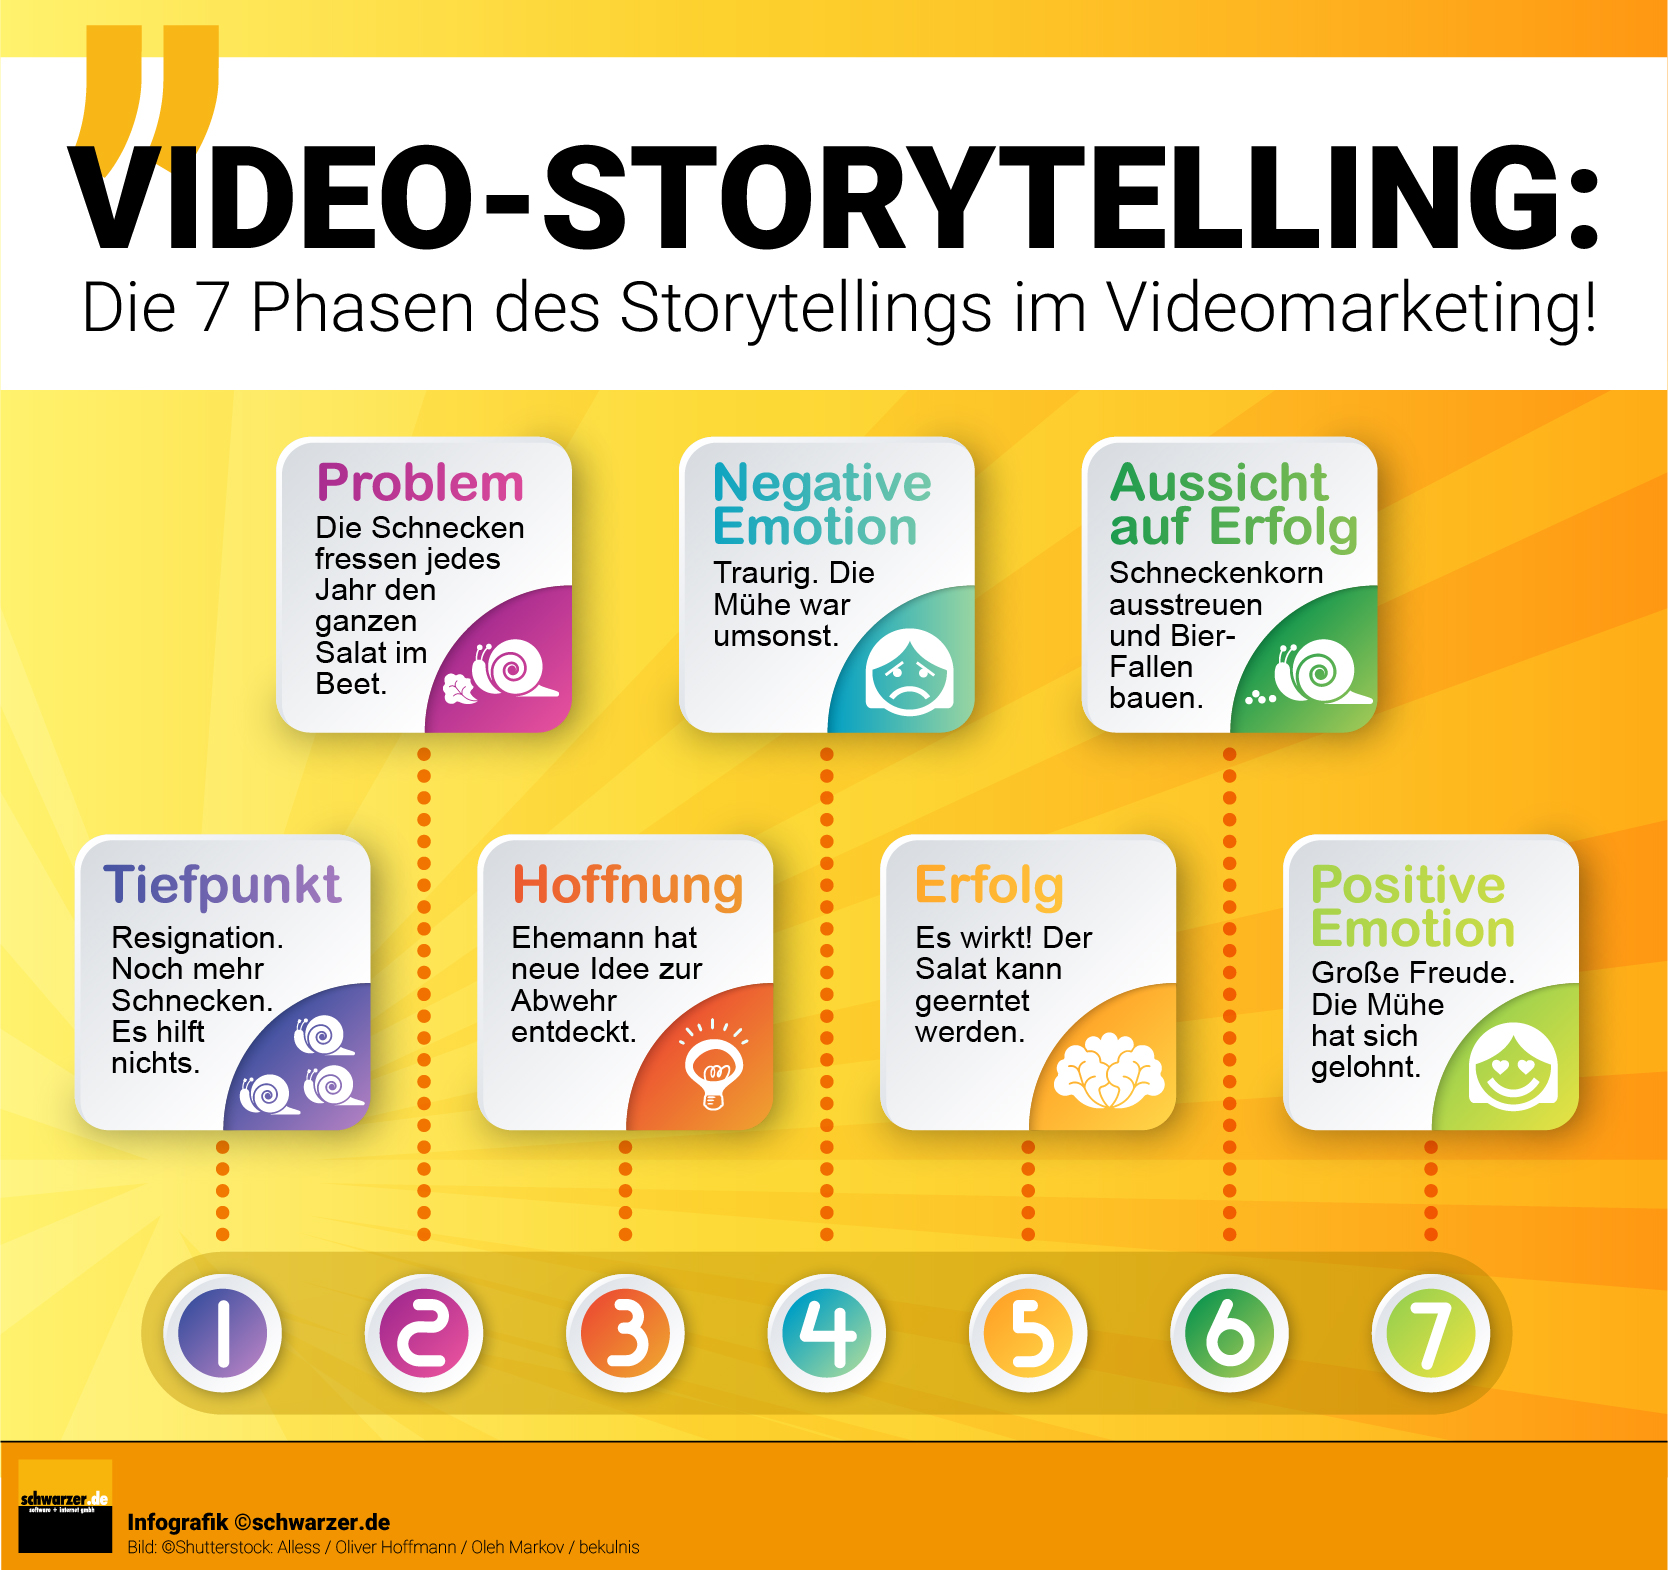 Infografik: Die 7 Phasen des Storytellings im Videomarketing.